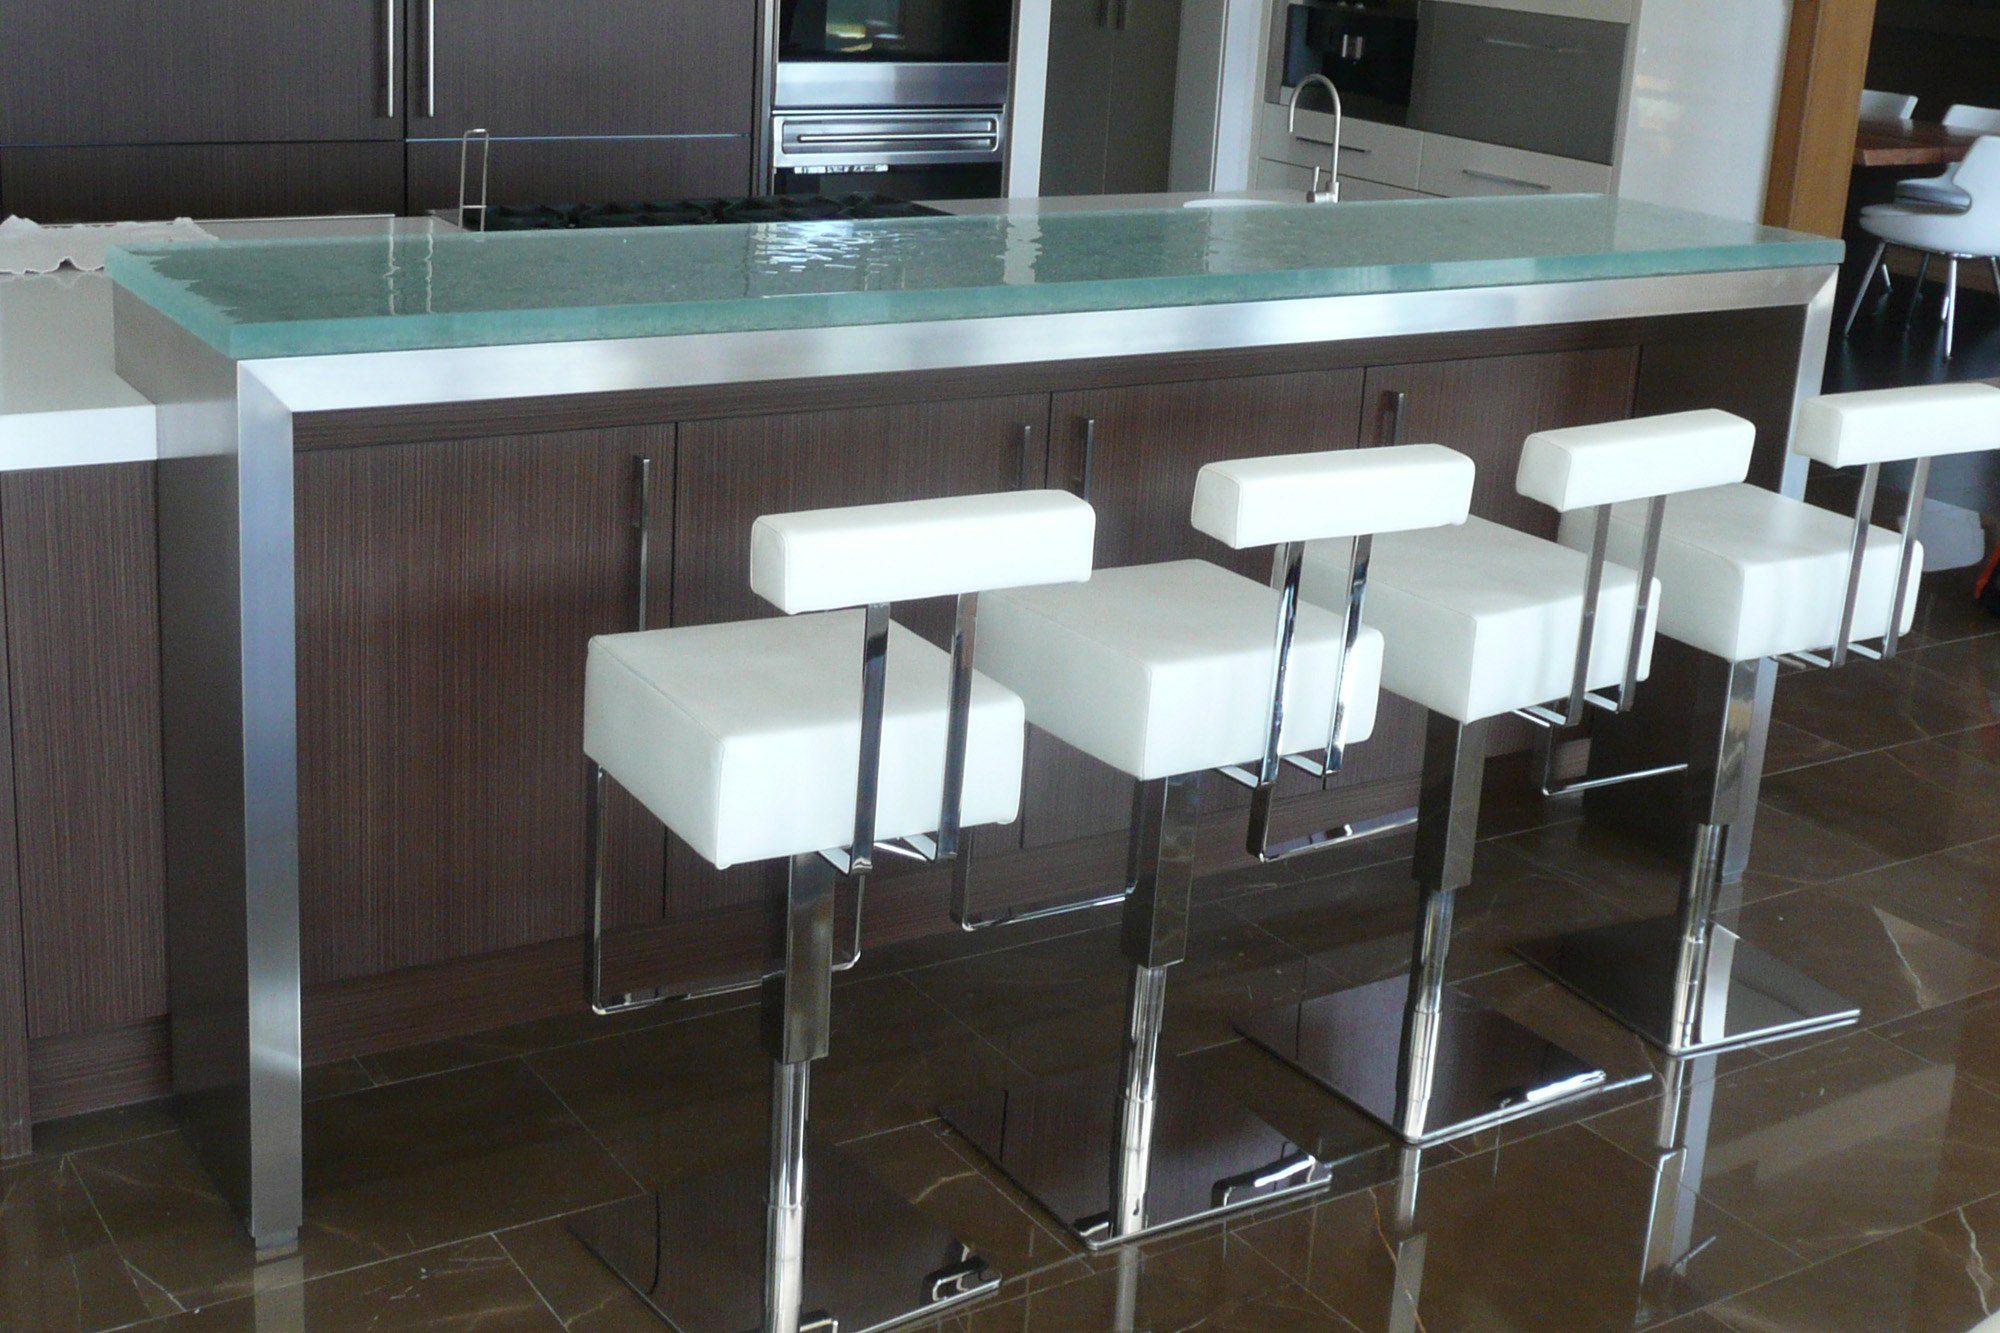 Kitchen Island Ideas With Bar The Ultimate Luxury Touch For Your Kitchen Decor - Glass